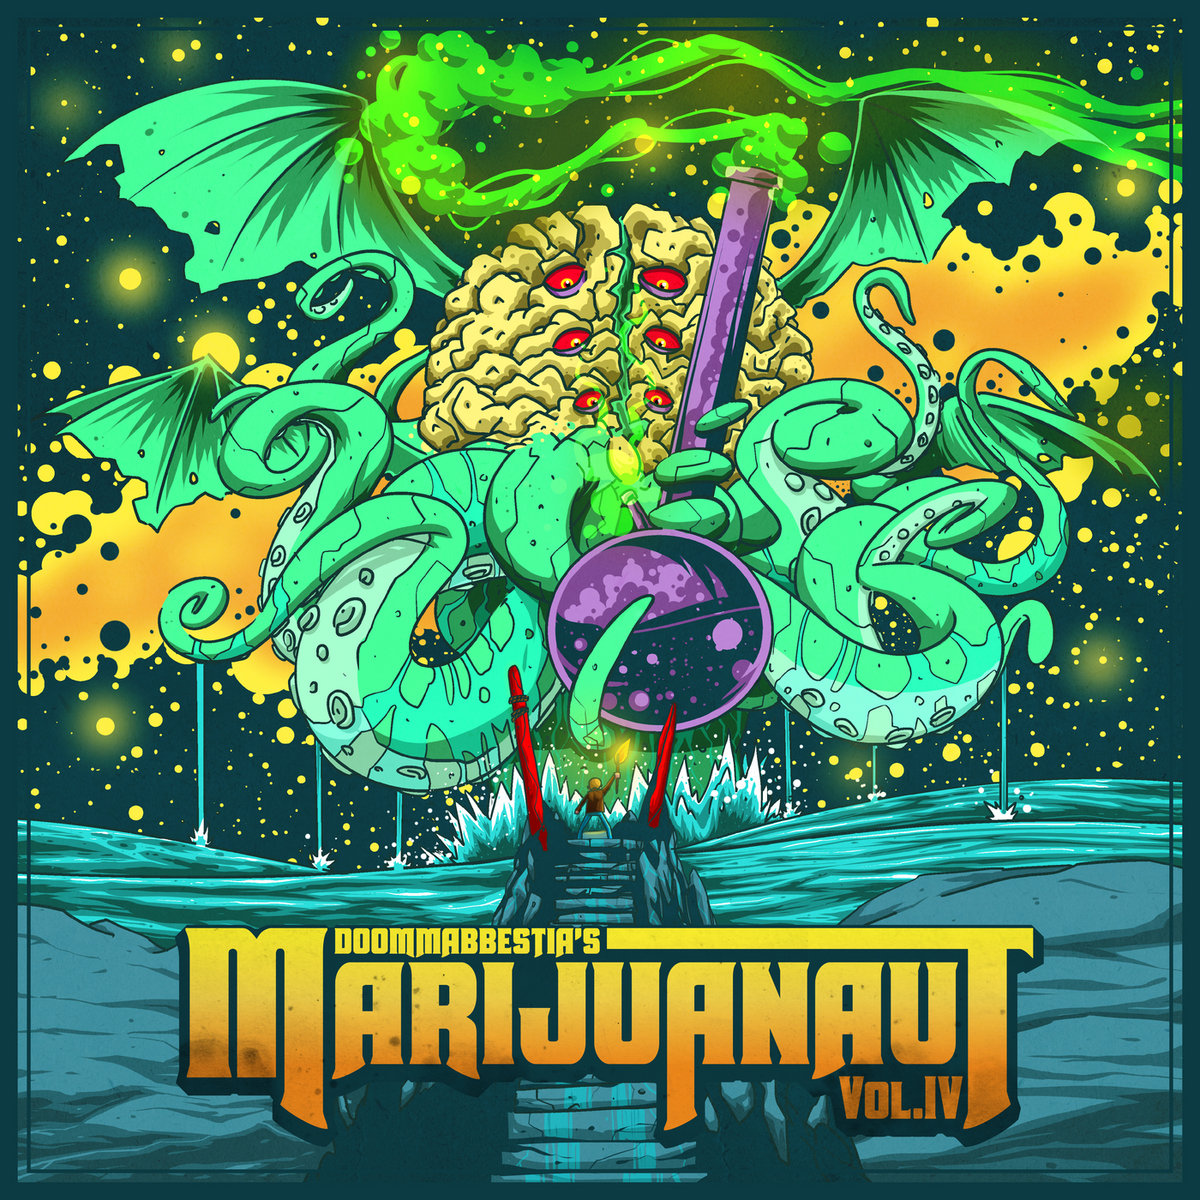 Marijuanaut vol. IV